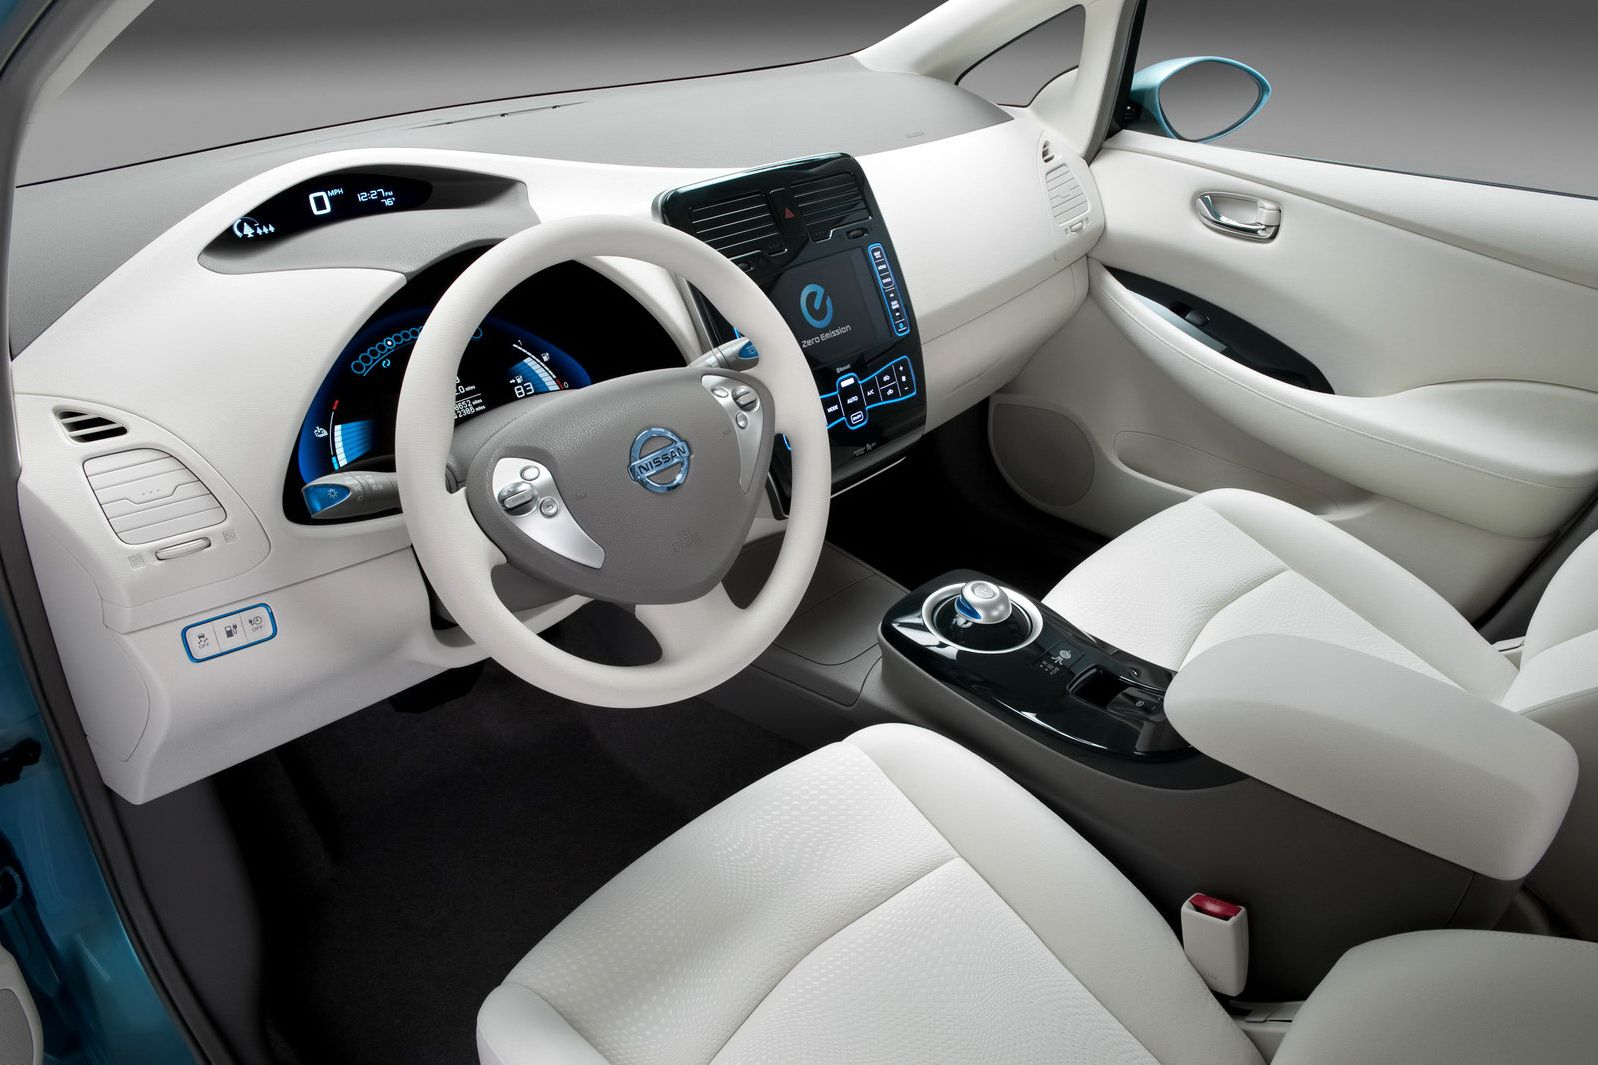 The Nissan Leaf Interior